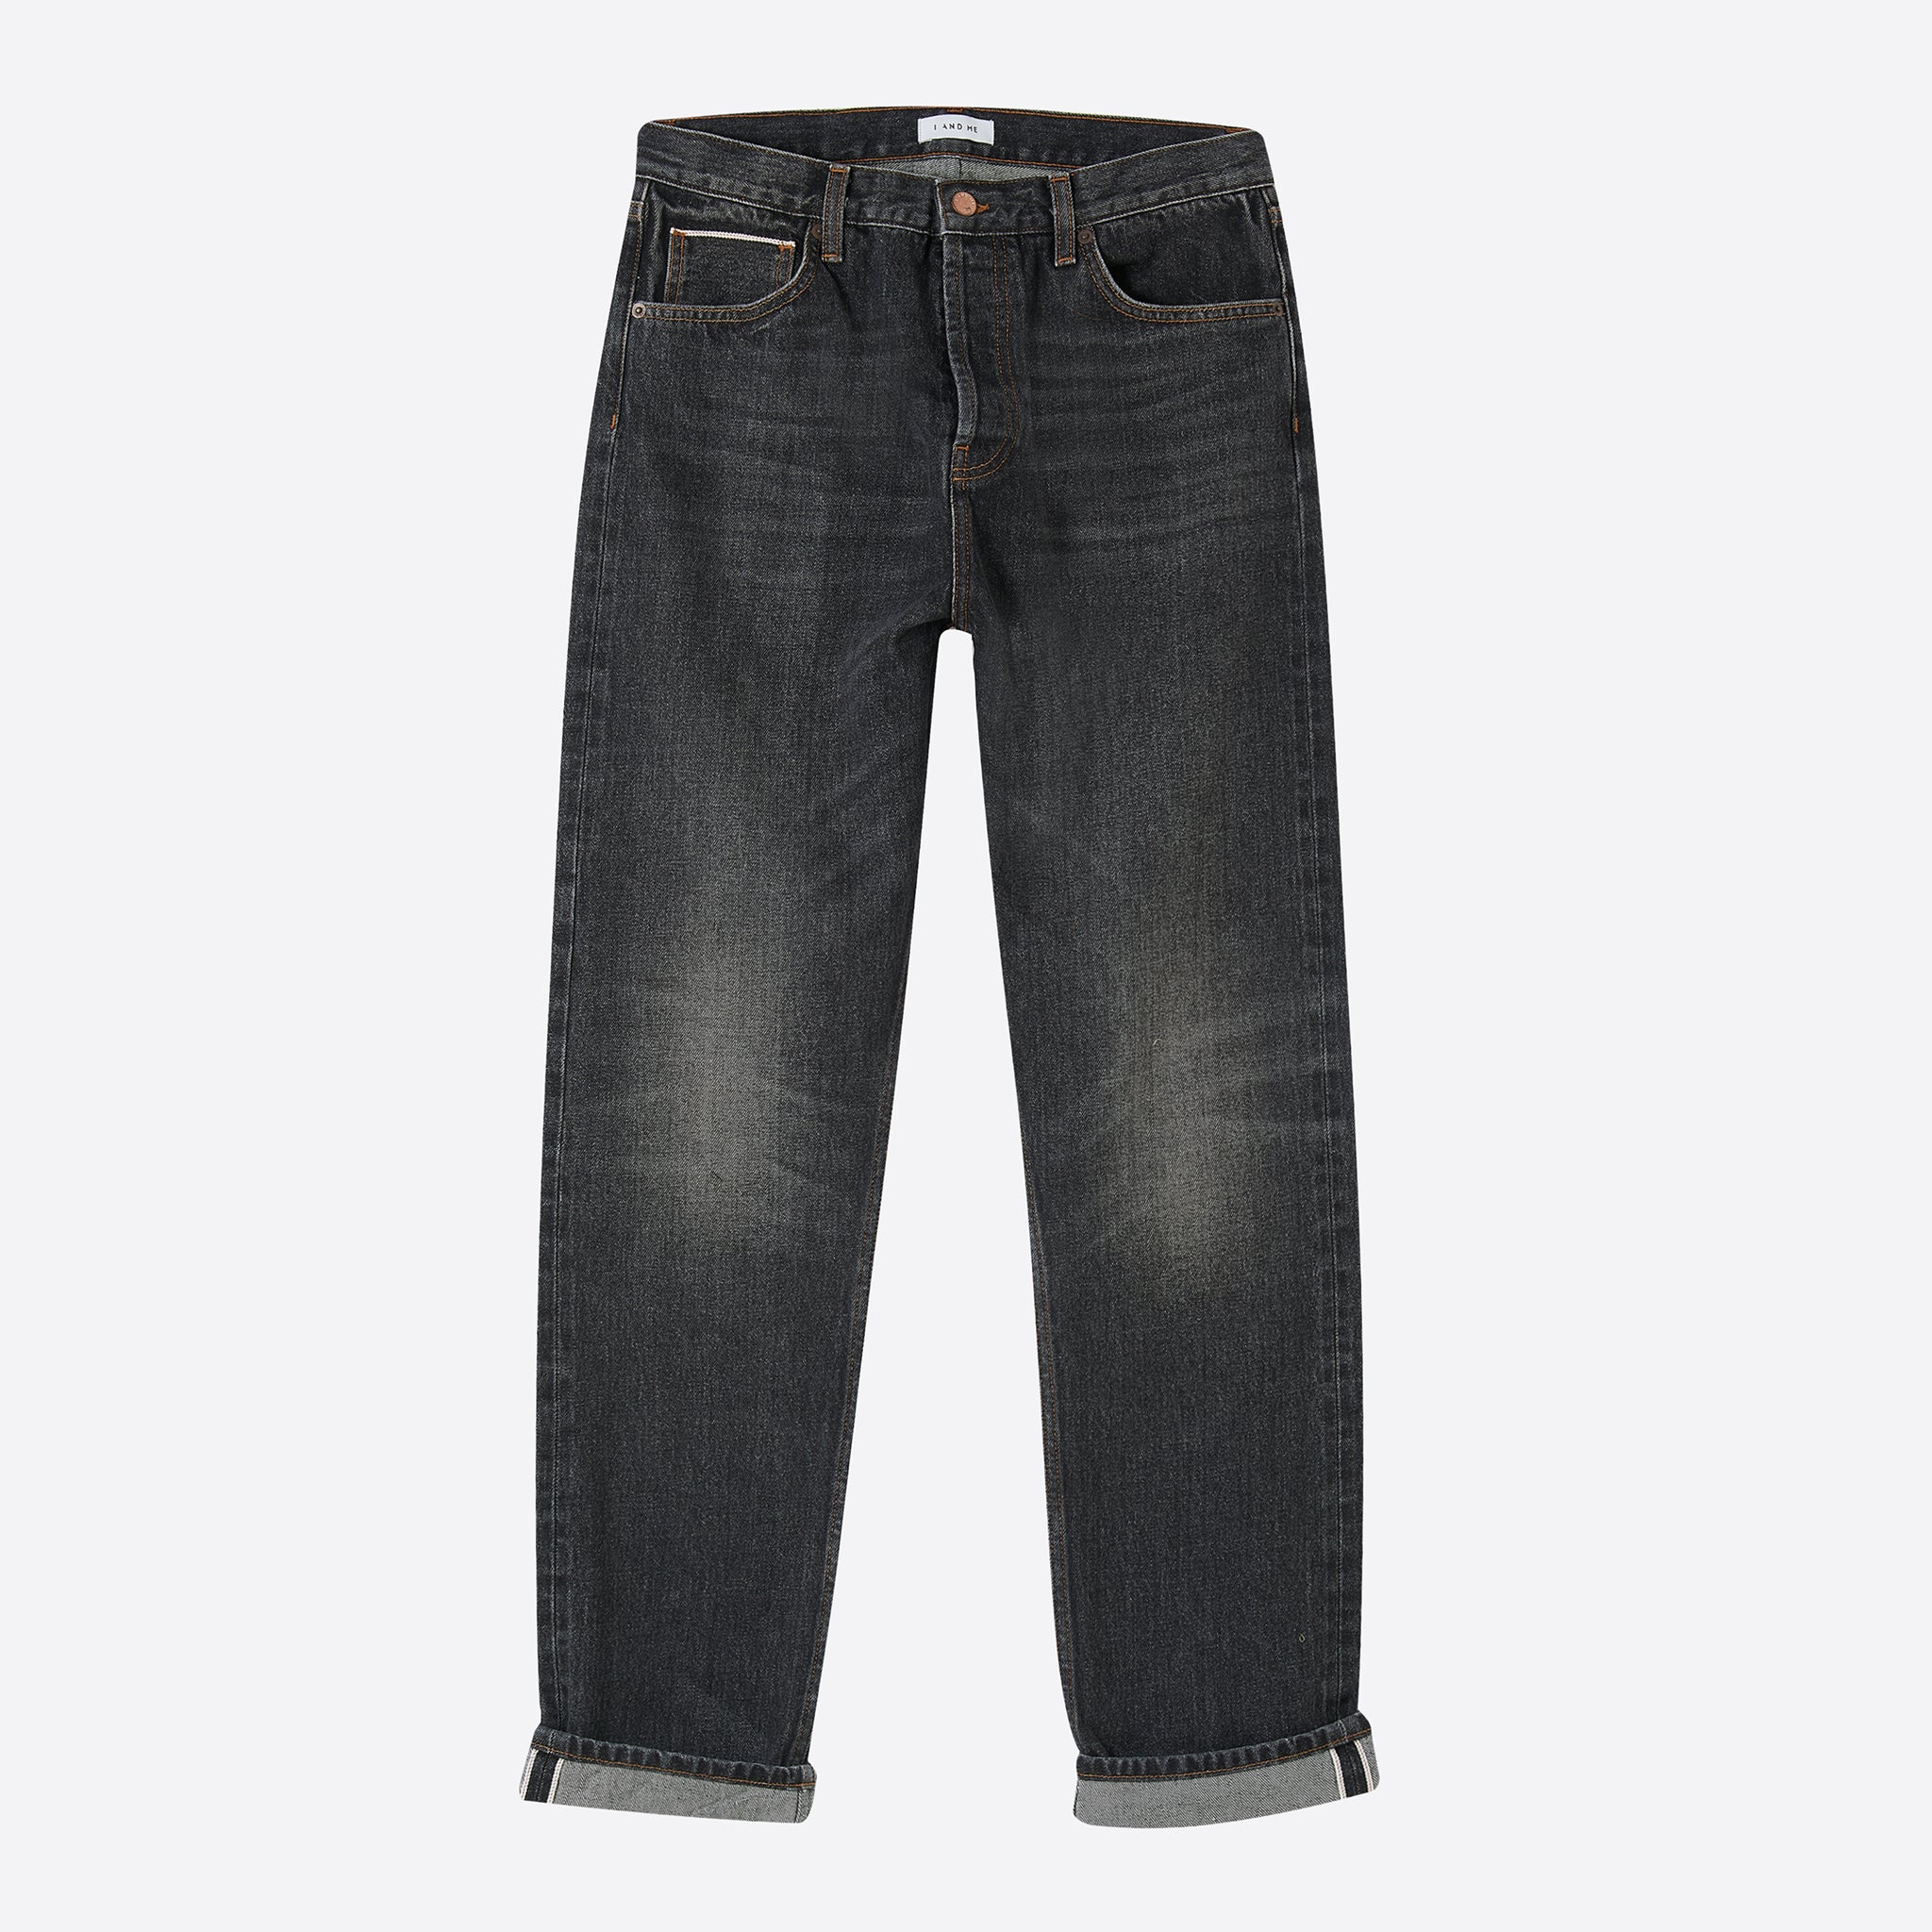 I AND ME Selvedge Slim Leg Jeans in Washed Black